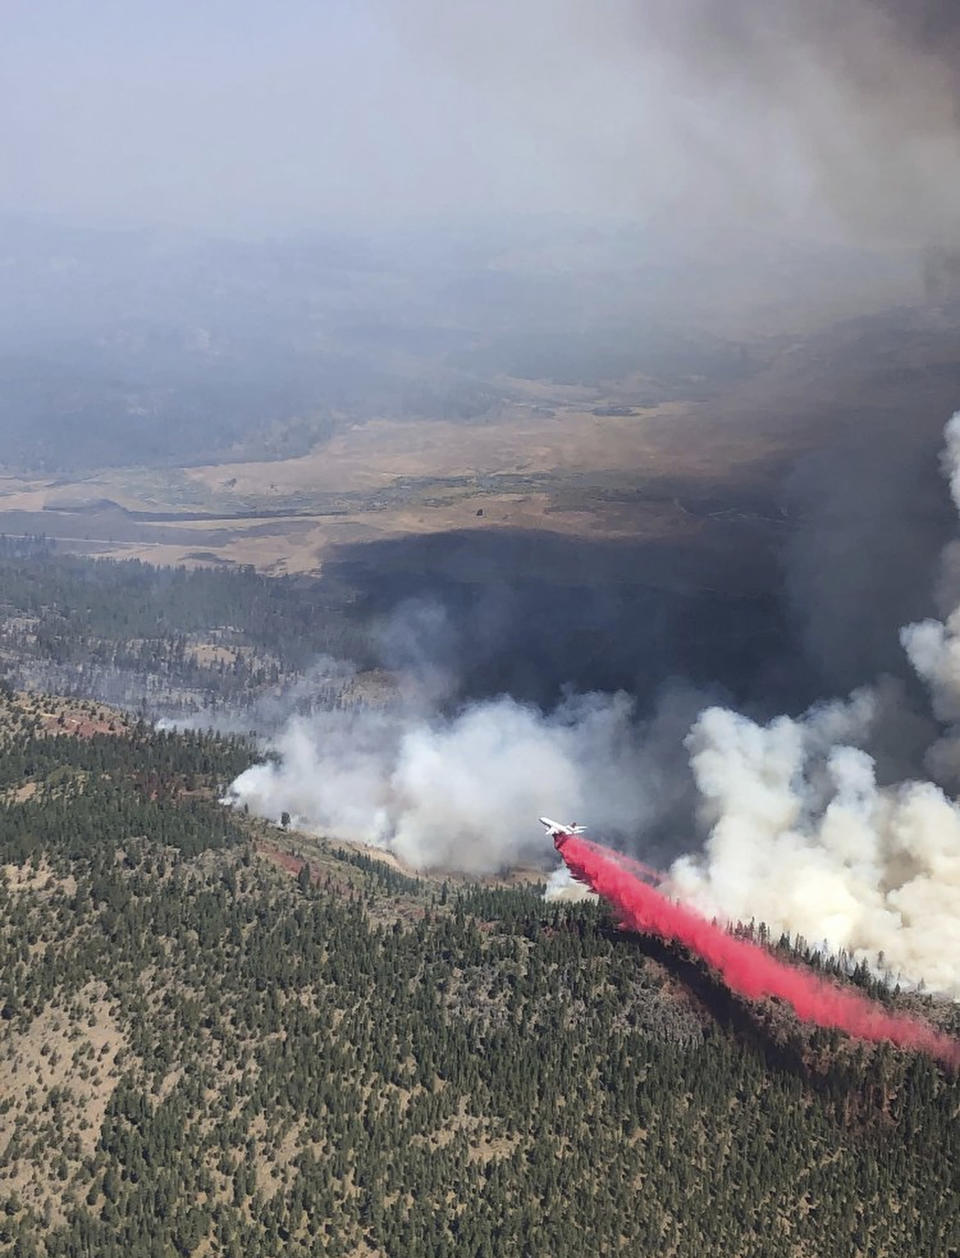 This Saturday, Sept. 4, 2021, aerial photo provided by the United States Forest Service Lassen National Forest shows the Great Basin Team 1 Air Attack operations on Saturday on the Dixie Fire on the Horton Ridge in Plumas County, Calif. The Dixie Fire began in mid-July in the northern Sierra Nevada and is the second-largest wildfire in recorded state history. It has burned nearly 1,400 square miles (3,625 square kilometers) in five counties and three national parks and forests, according to Cal Fire. (Great Basin Team 1 Air Attack Operations/U.S. Forest Service via AP)